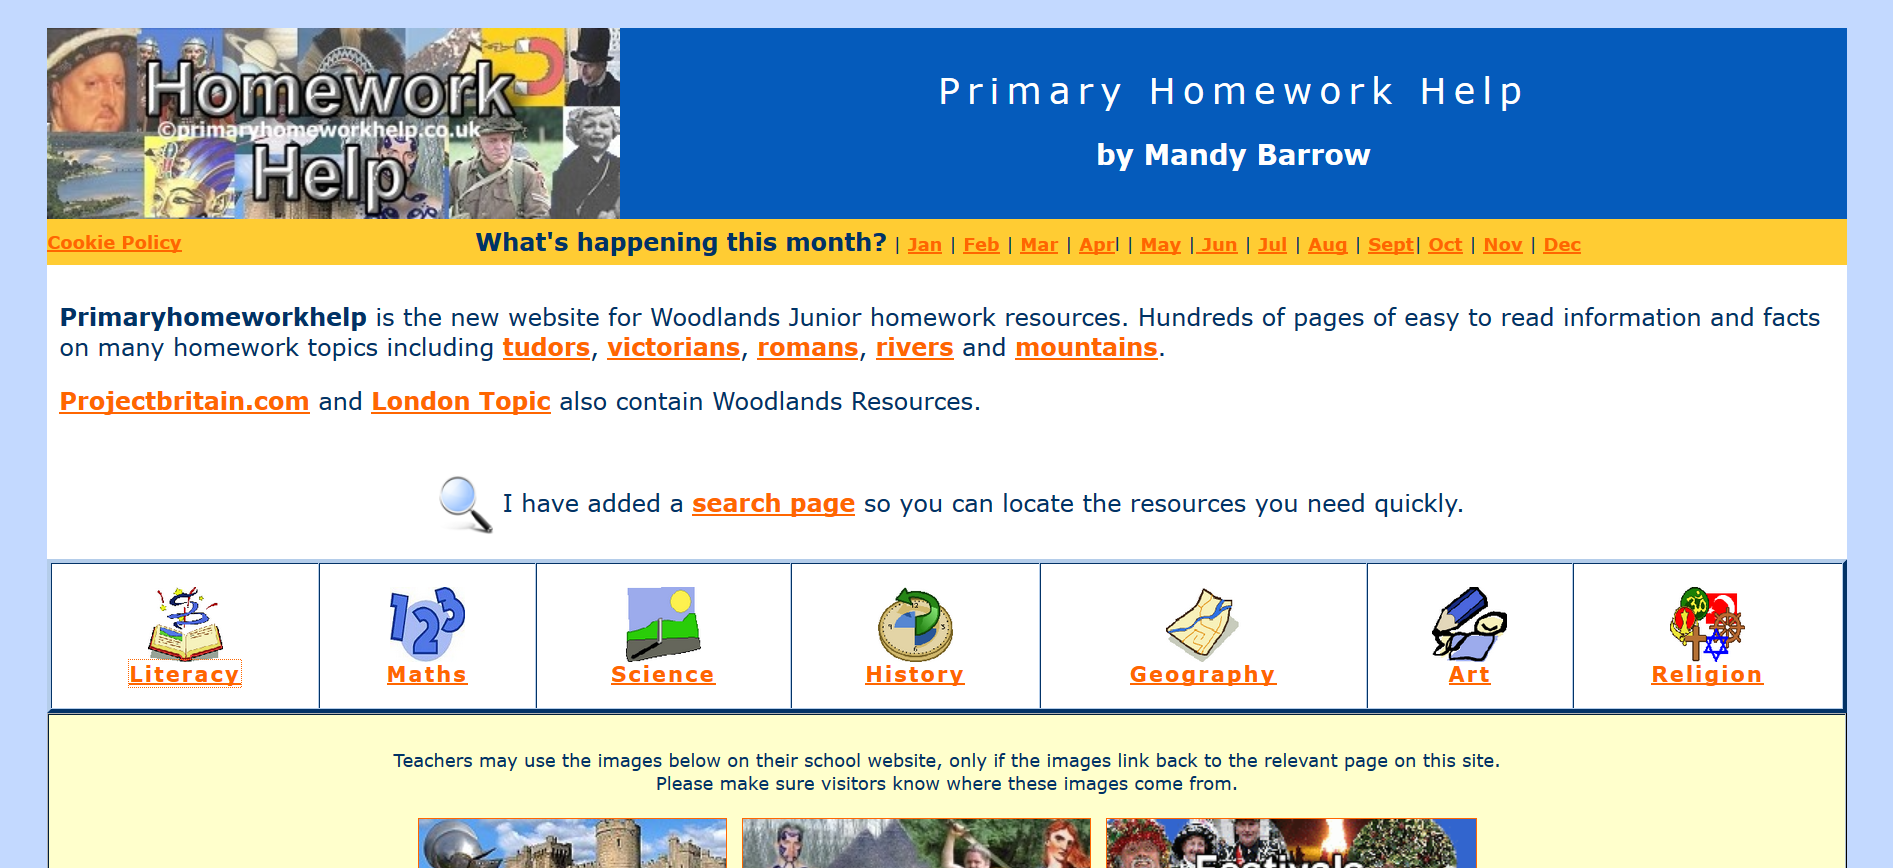 Woodlands junior kent history homework help